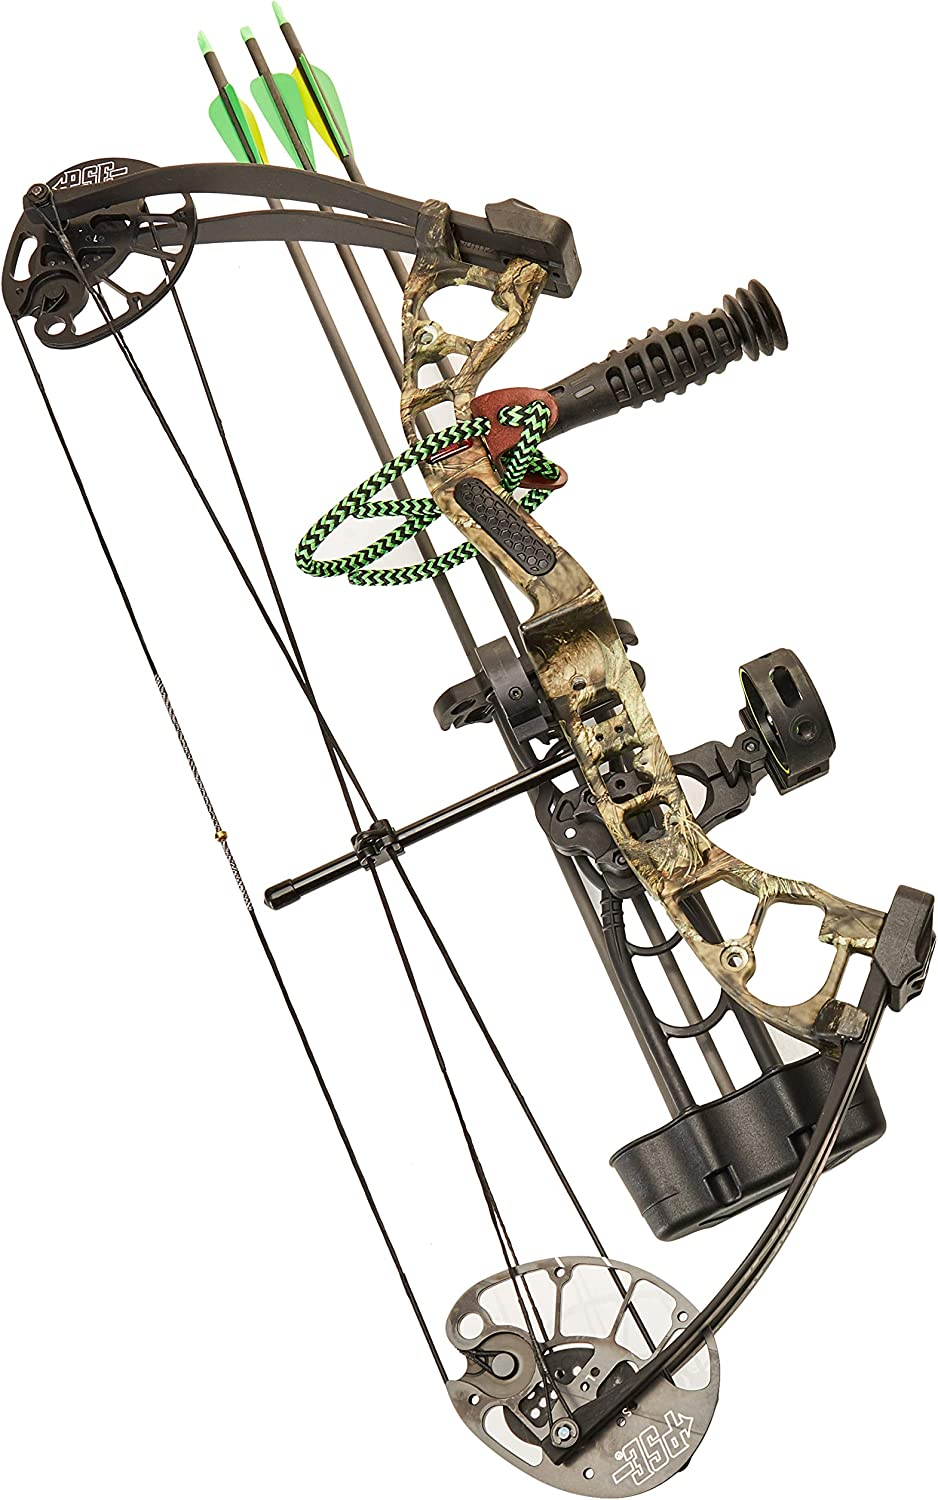 PSE Mini Burner RTS Compound Bow Package RH Mossy Oak Break Up Country 25-40 lb